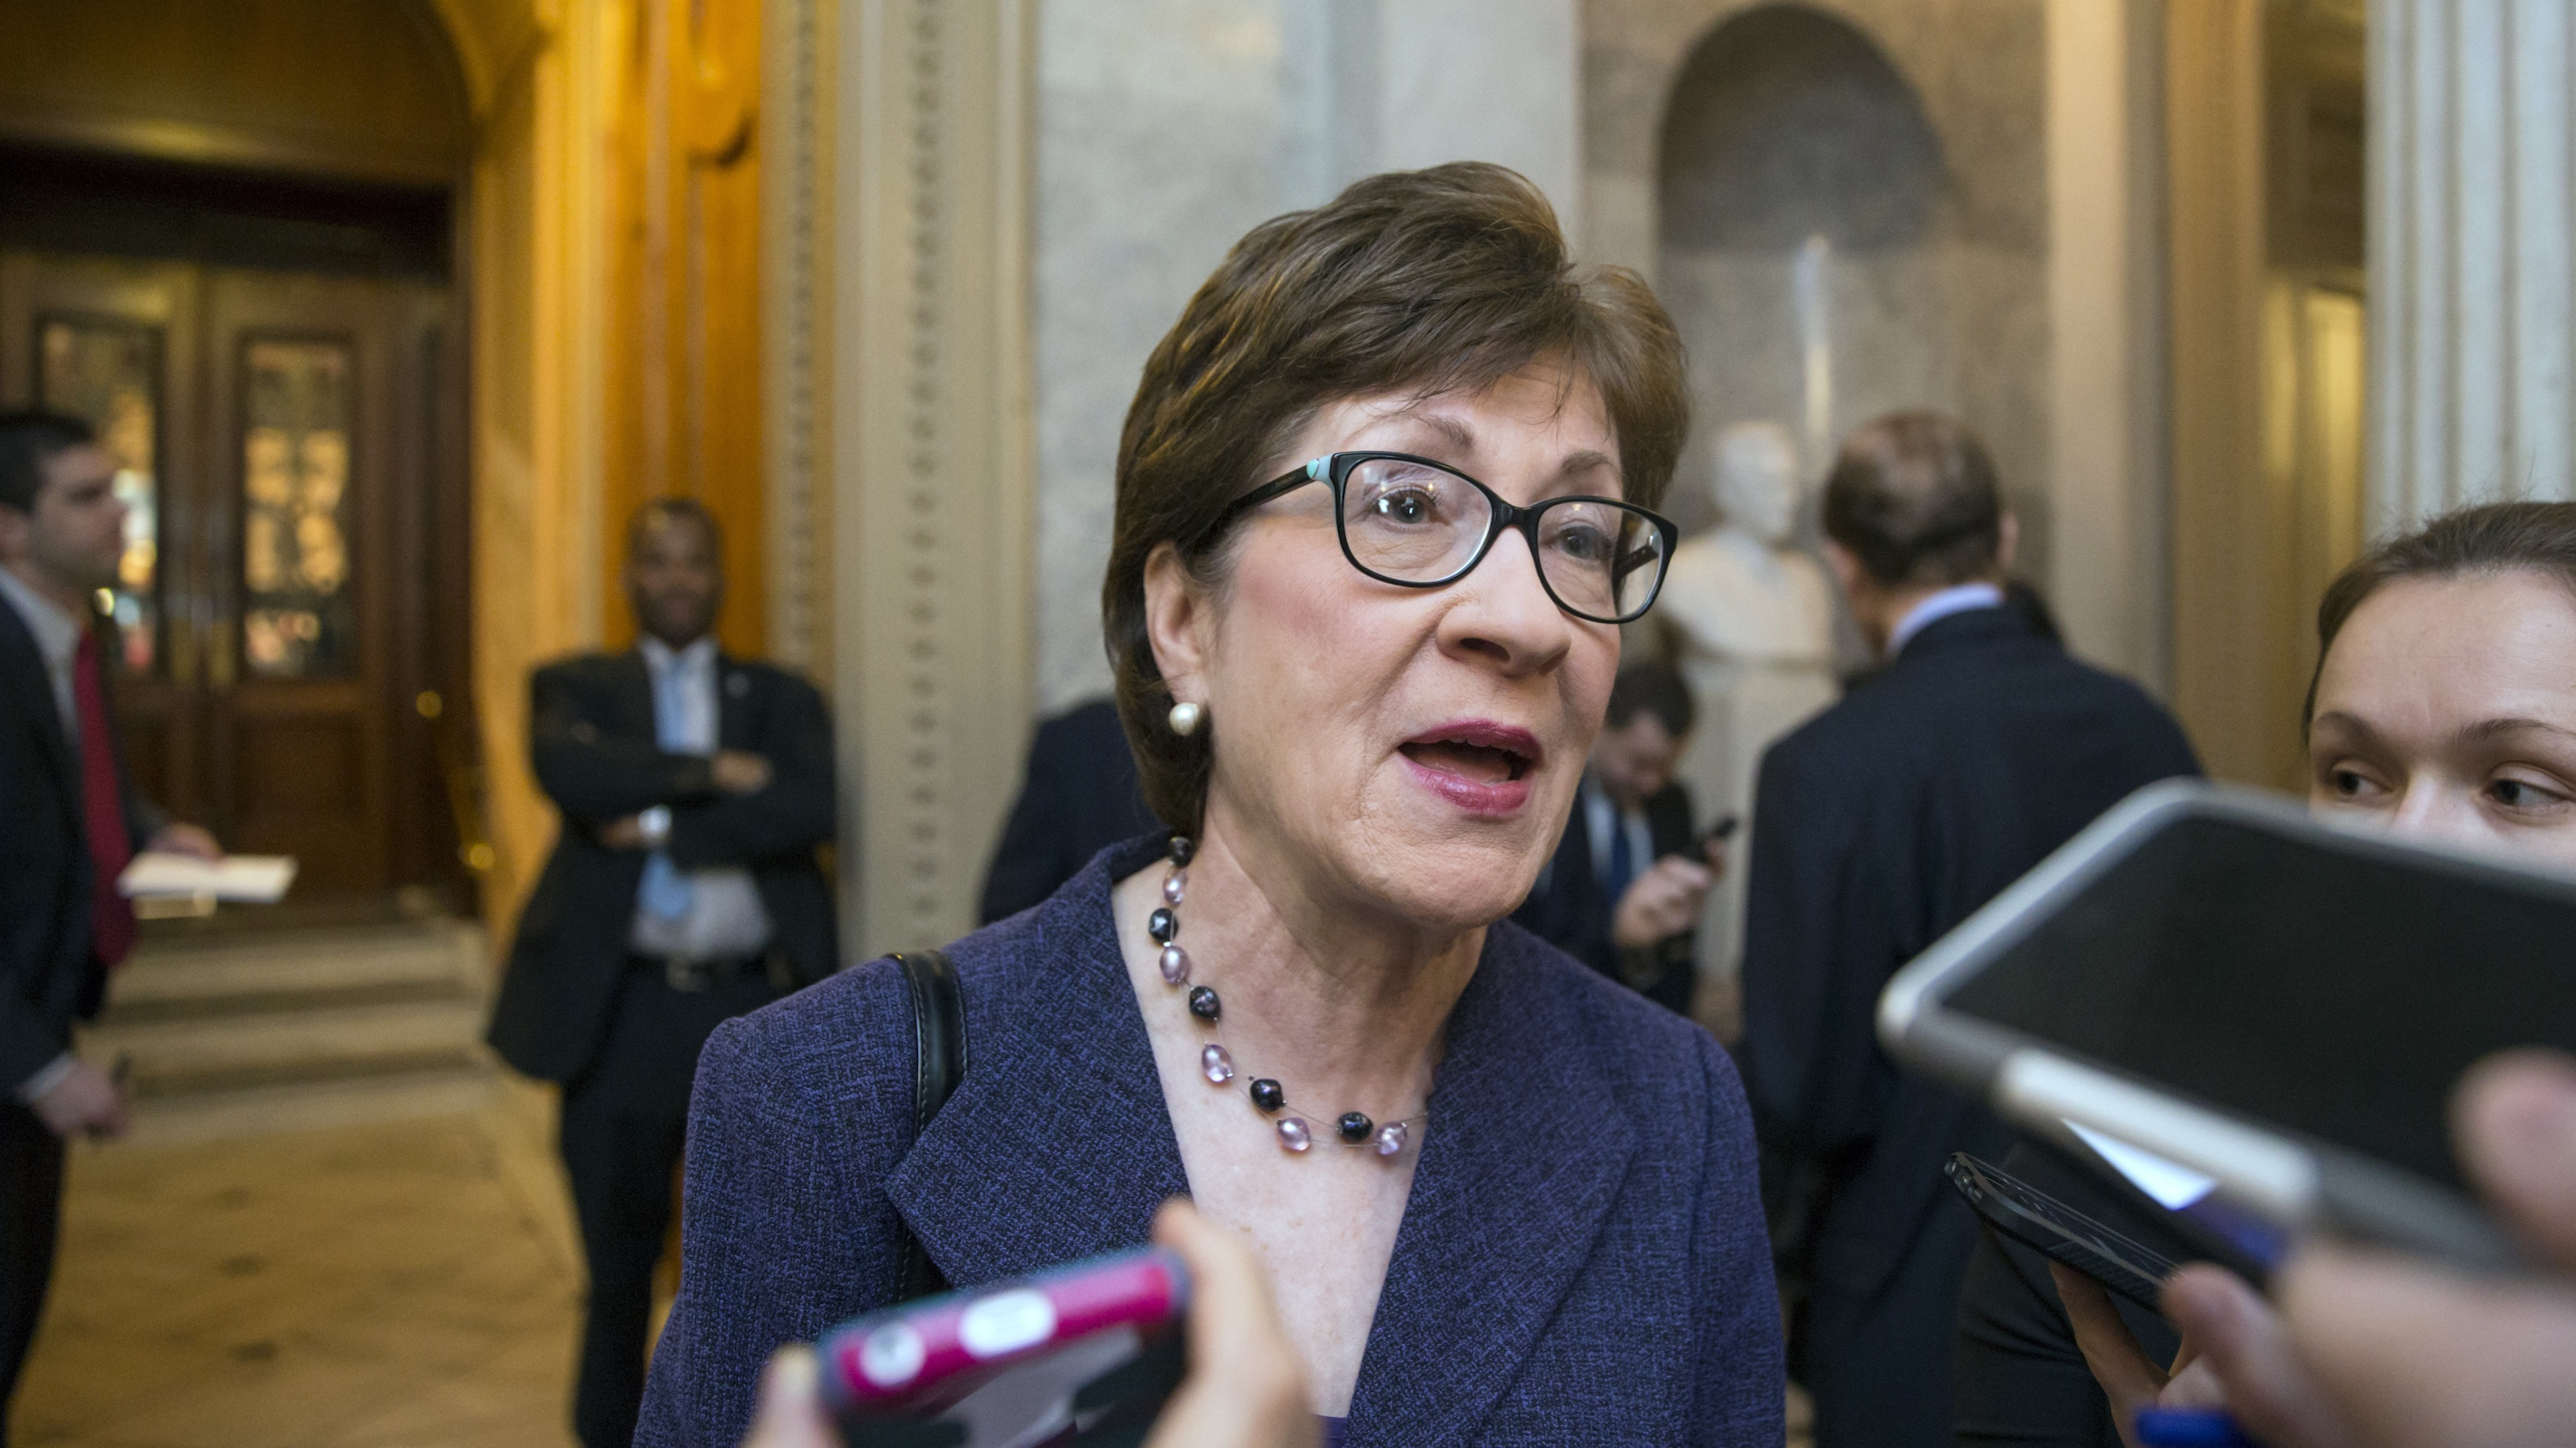 Senator Susan Collins of Maine says she won't be supporting her party's candidate for president in November.